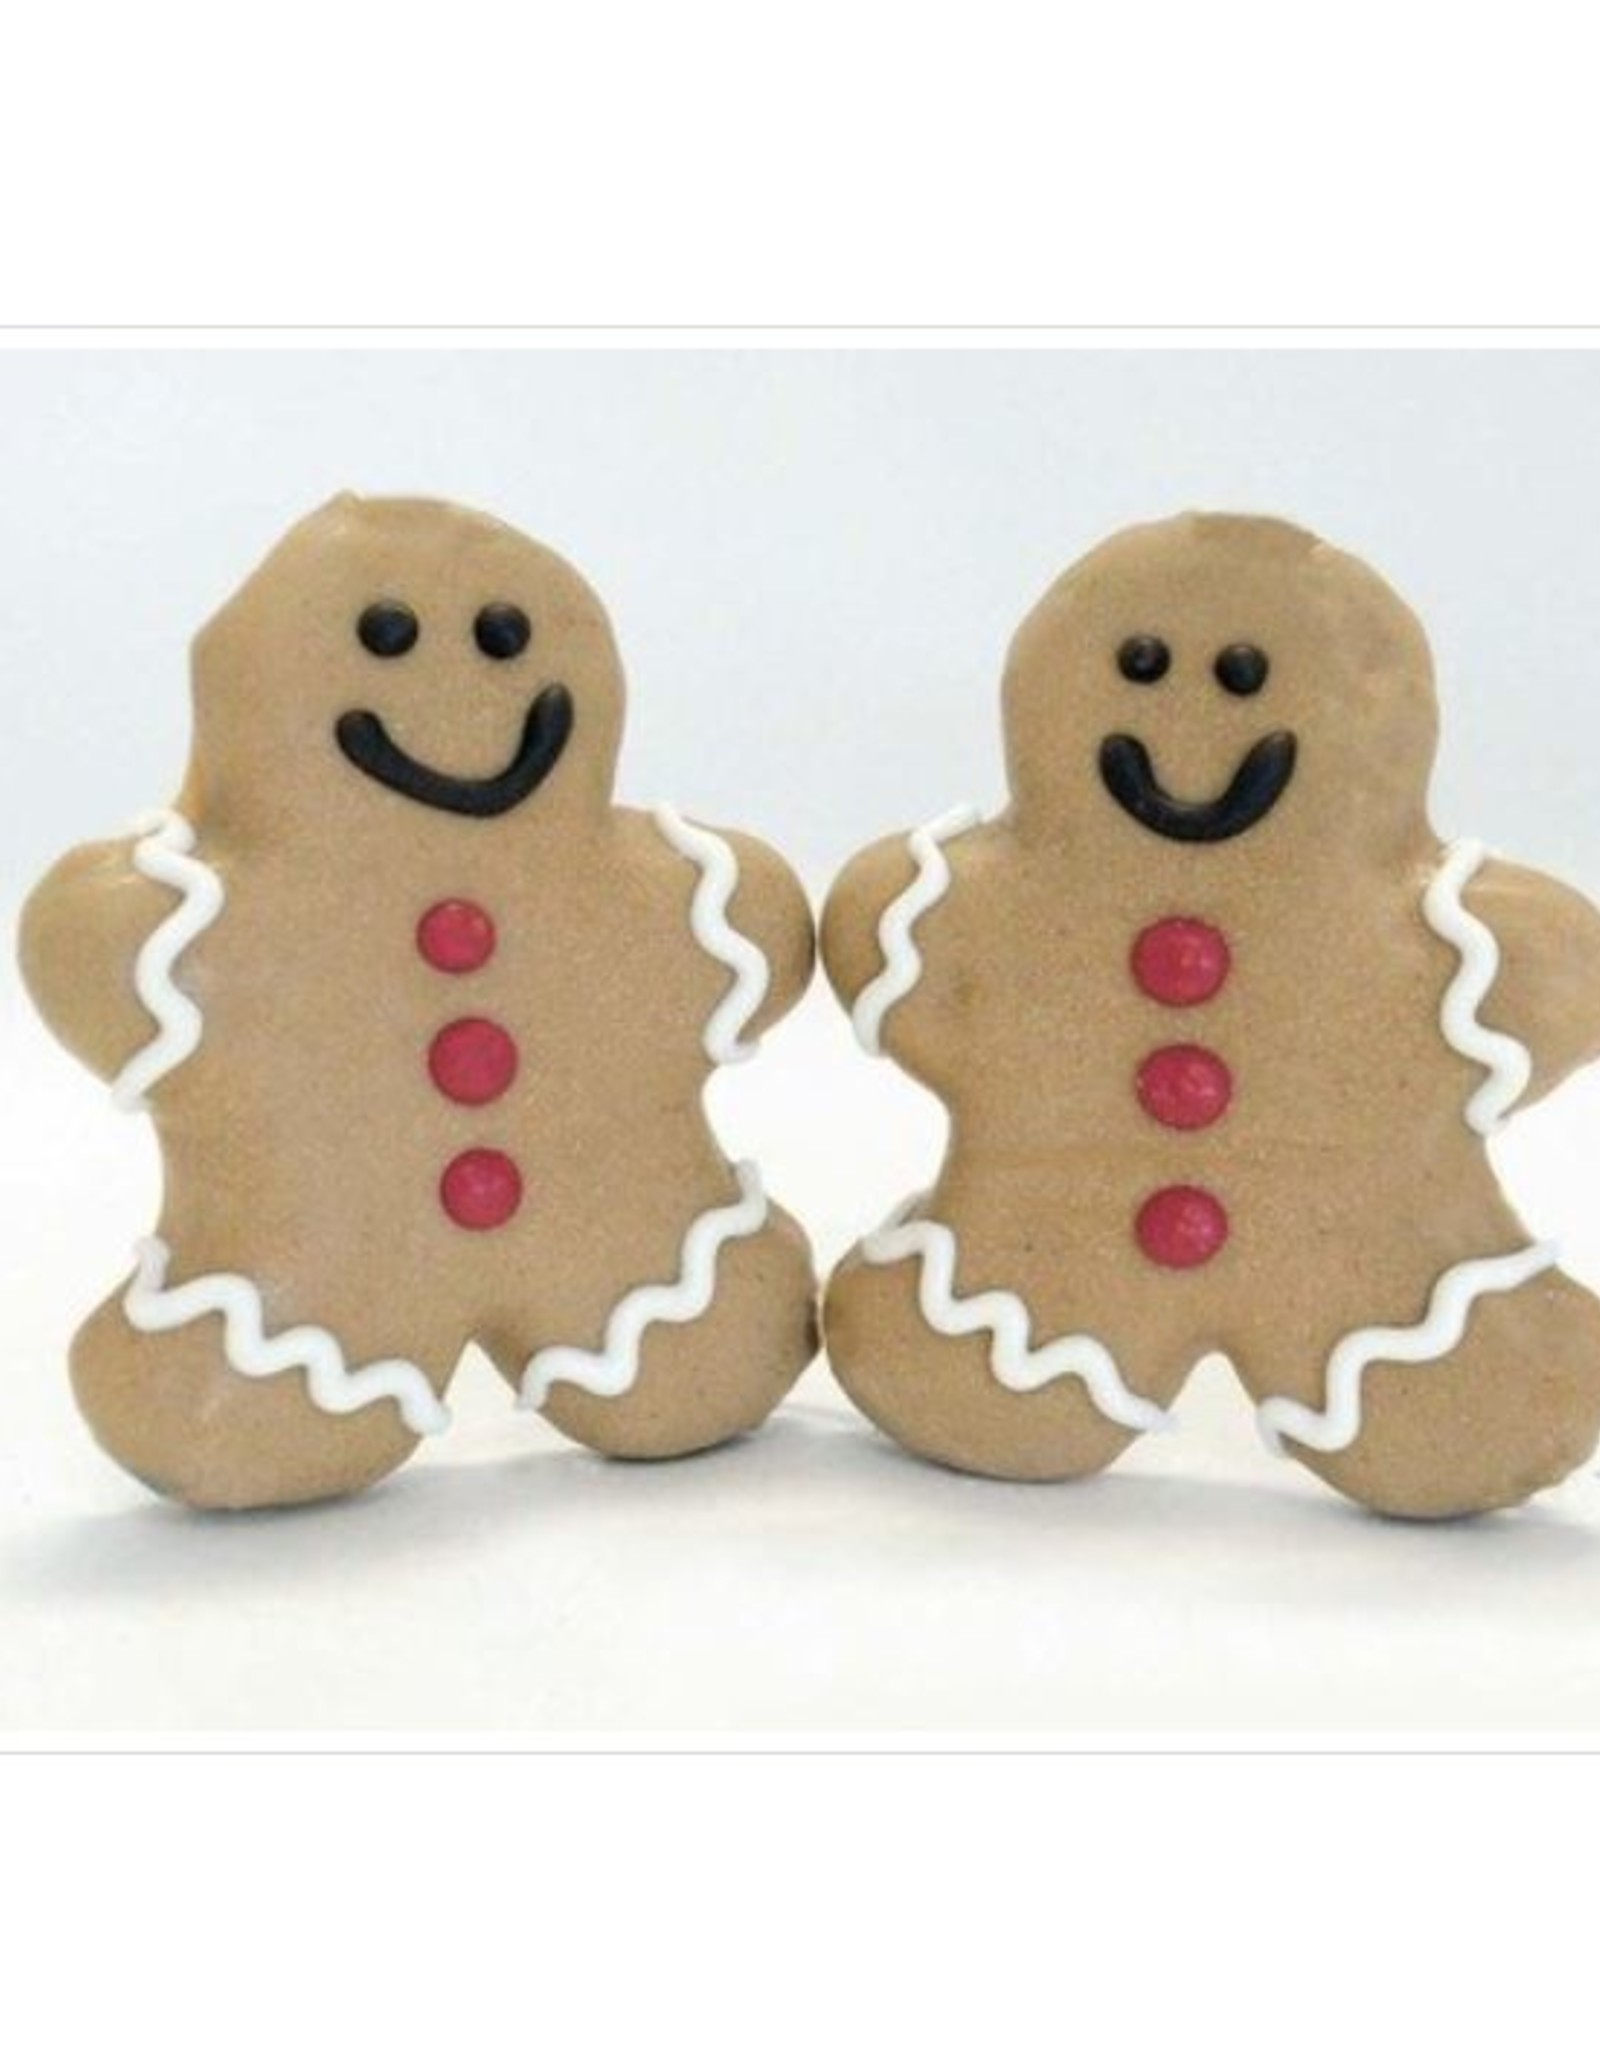 Woofables Gingerbread Man